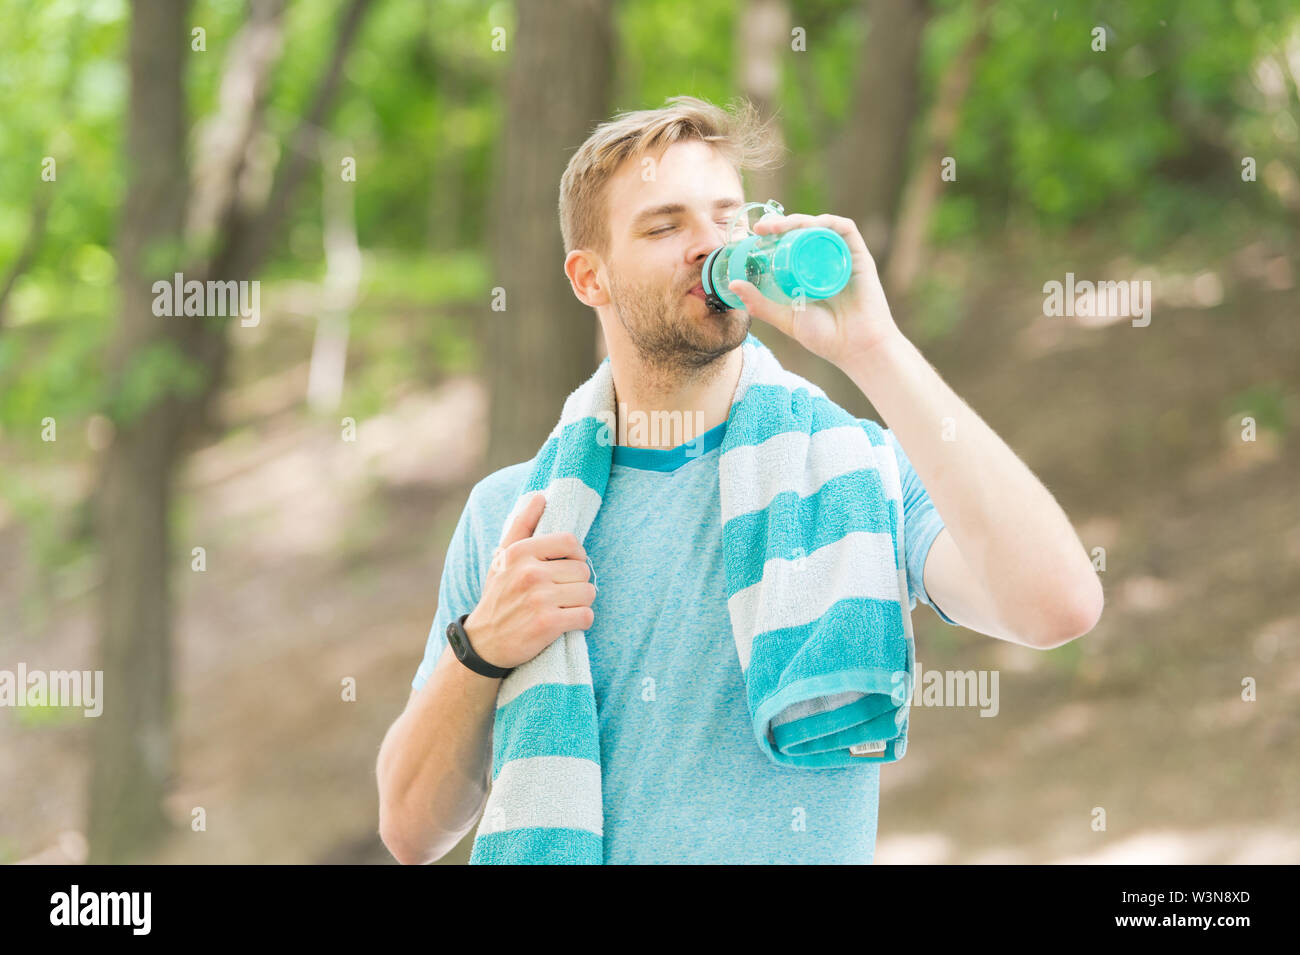 Water is indispensable for human health. Fit athlete having a drink from water bottle during training outdoor. Thirsty sportsman drinking pure water on hot summer day. Keeping body water balance. - Stock Image